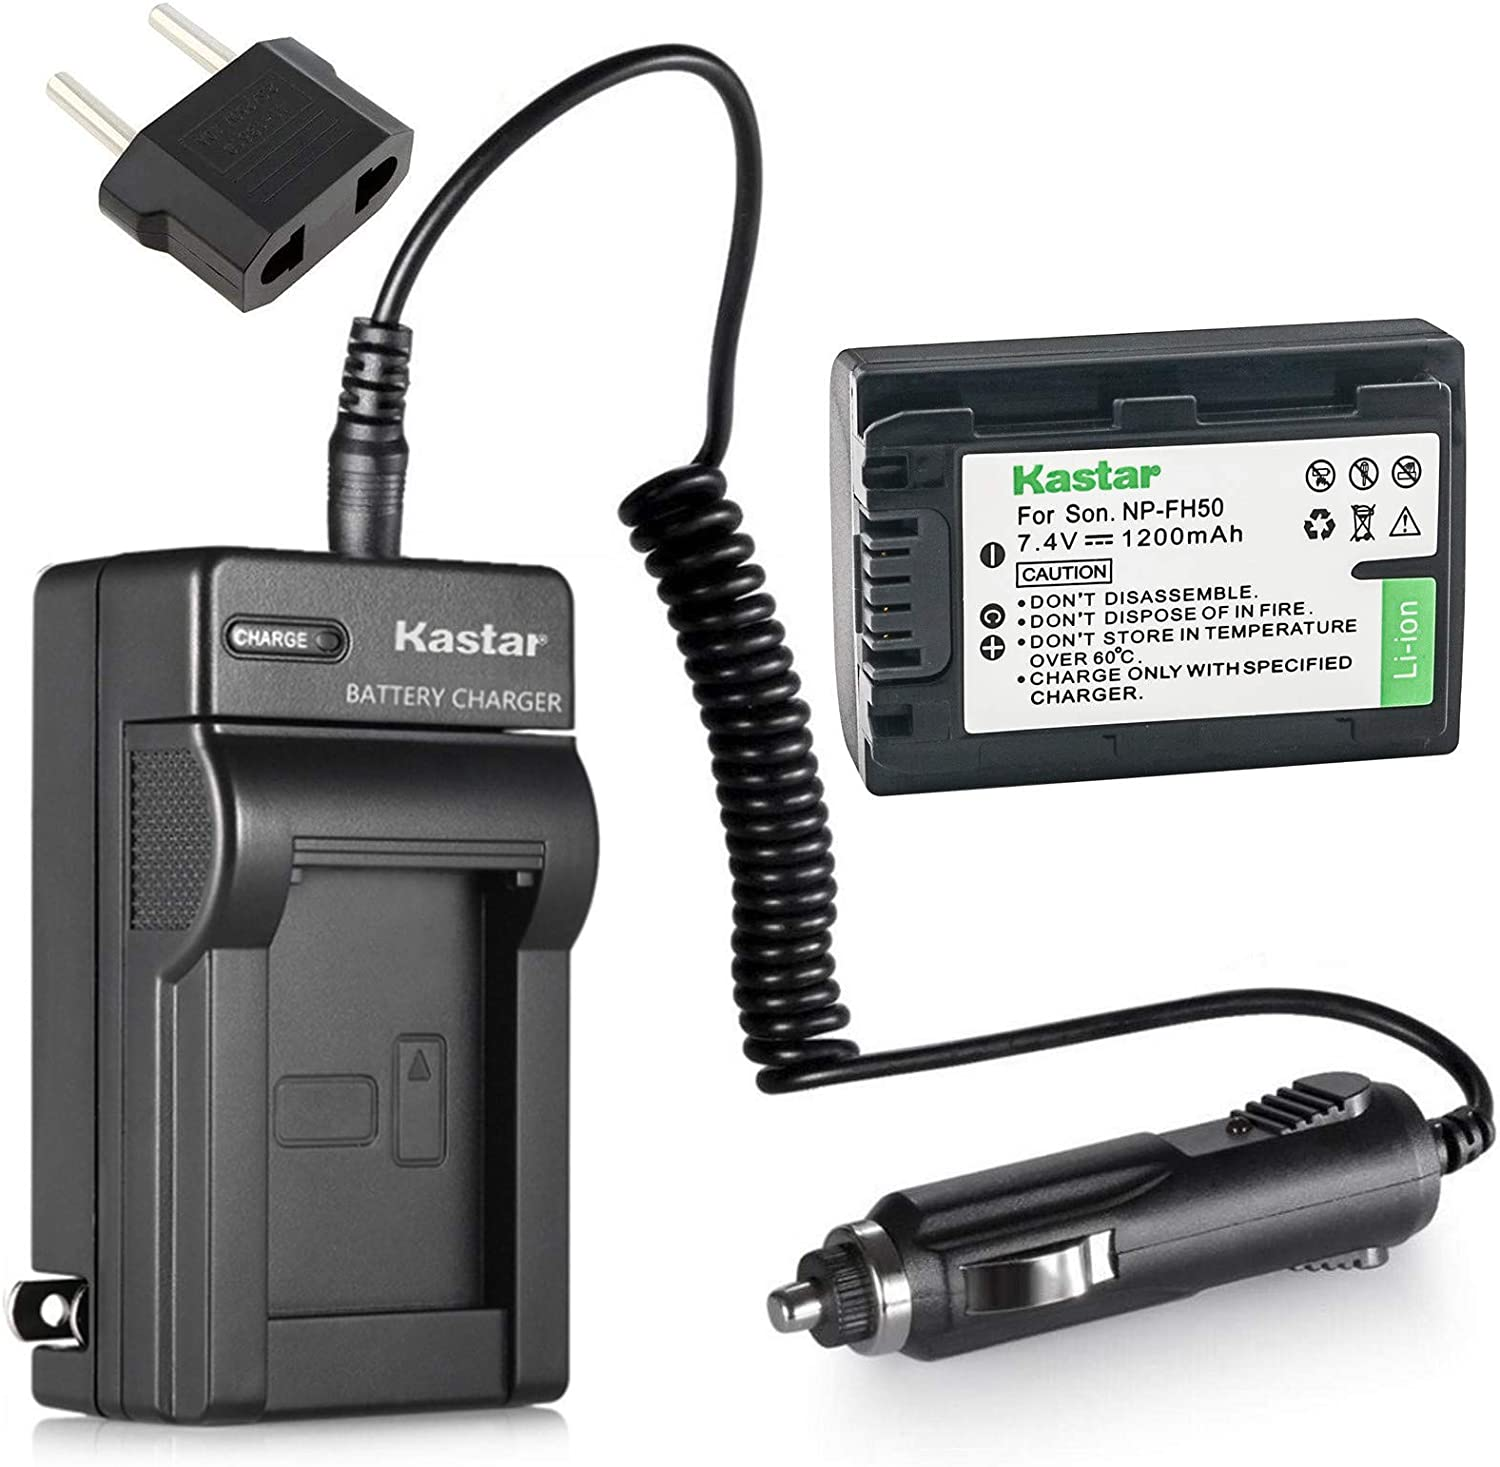 DCR-DVD308 LCD Displays Fast Battery Charger for Sony DCR-DVD304 DCR-DVD305 DCR-DVD310 Handycam Camcorder DCR-DVD306